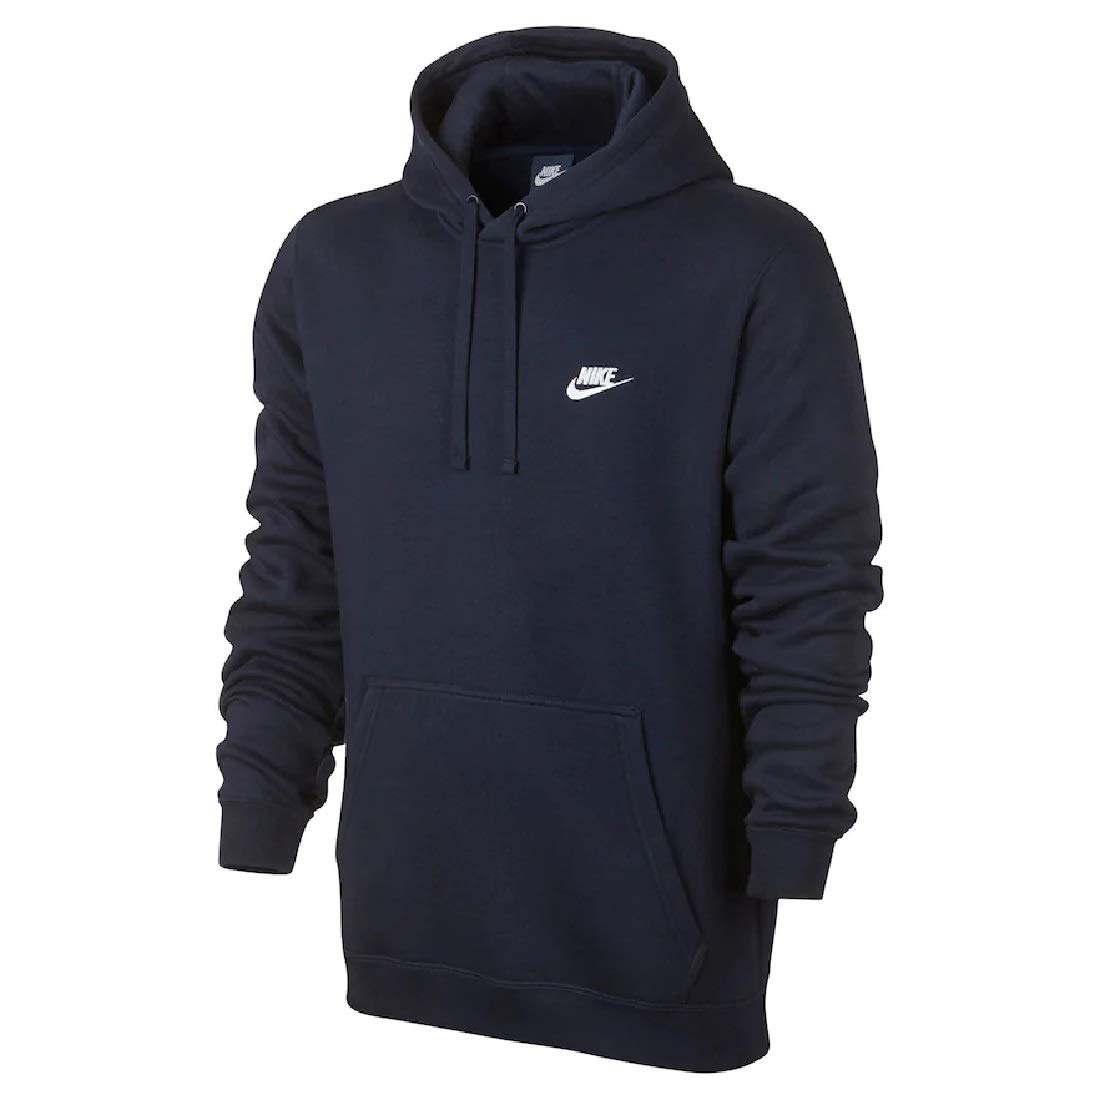 a266c49fc Amazon.com: Nike Men's Club Fleece Pullover Hoodie (Navy, XL): Sports &  Outdoors